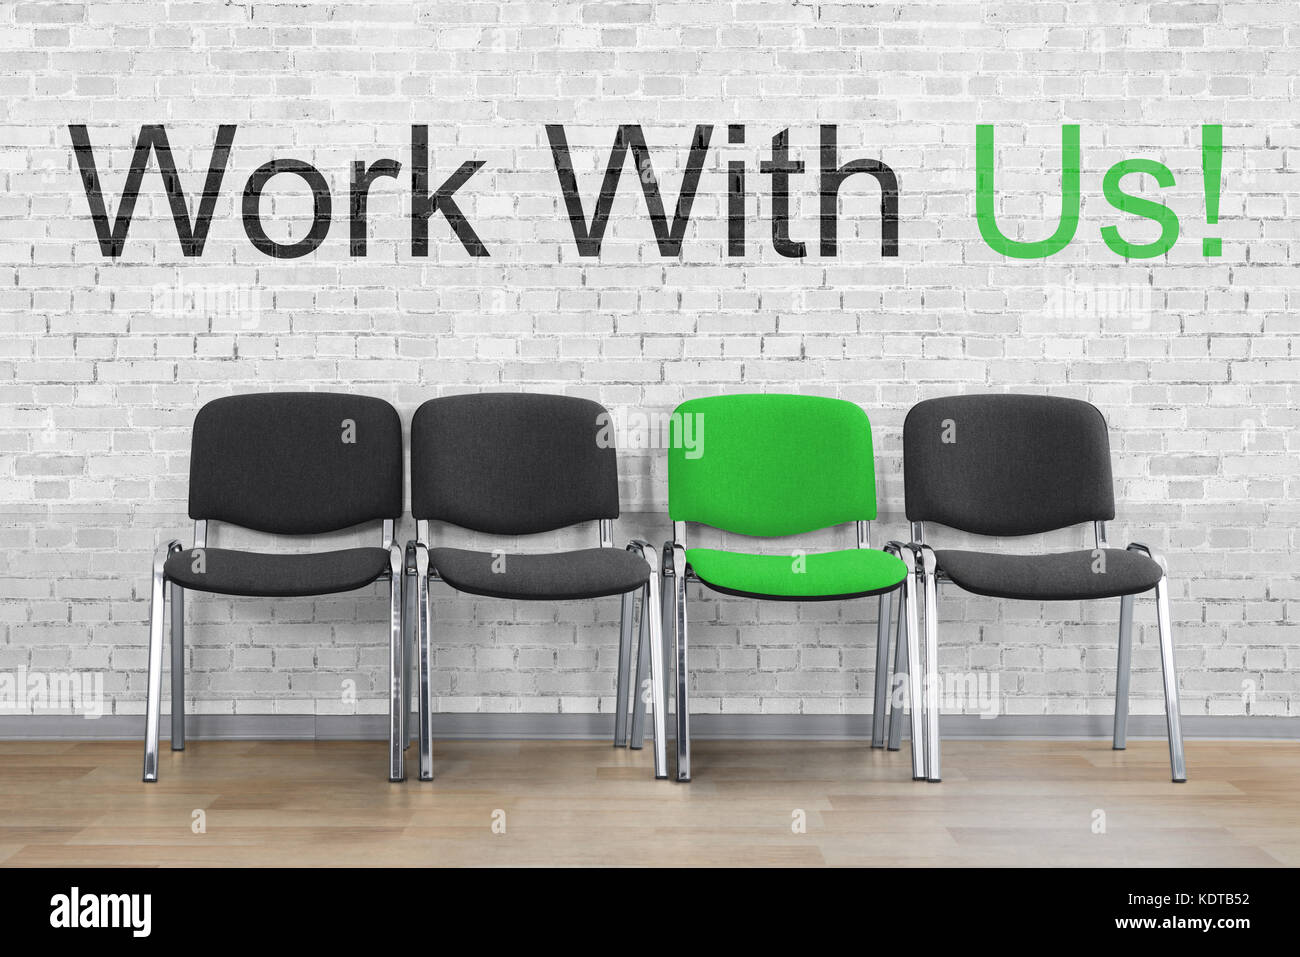 Work With Us Written With An Empty Chair In A Row. HR Resource Stock ...